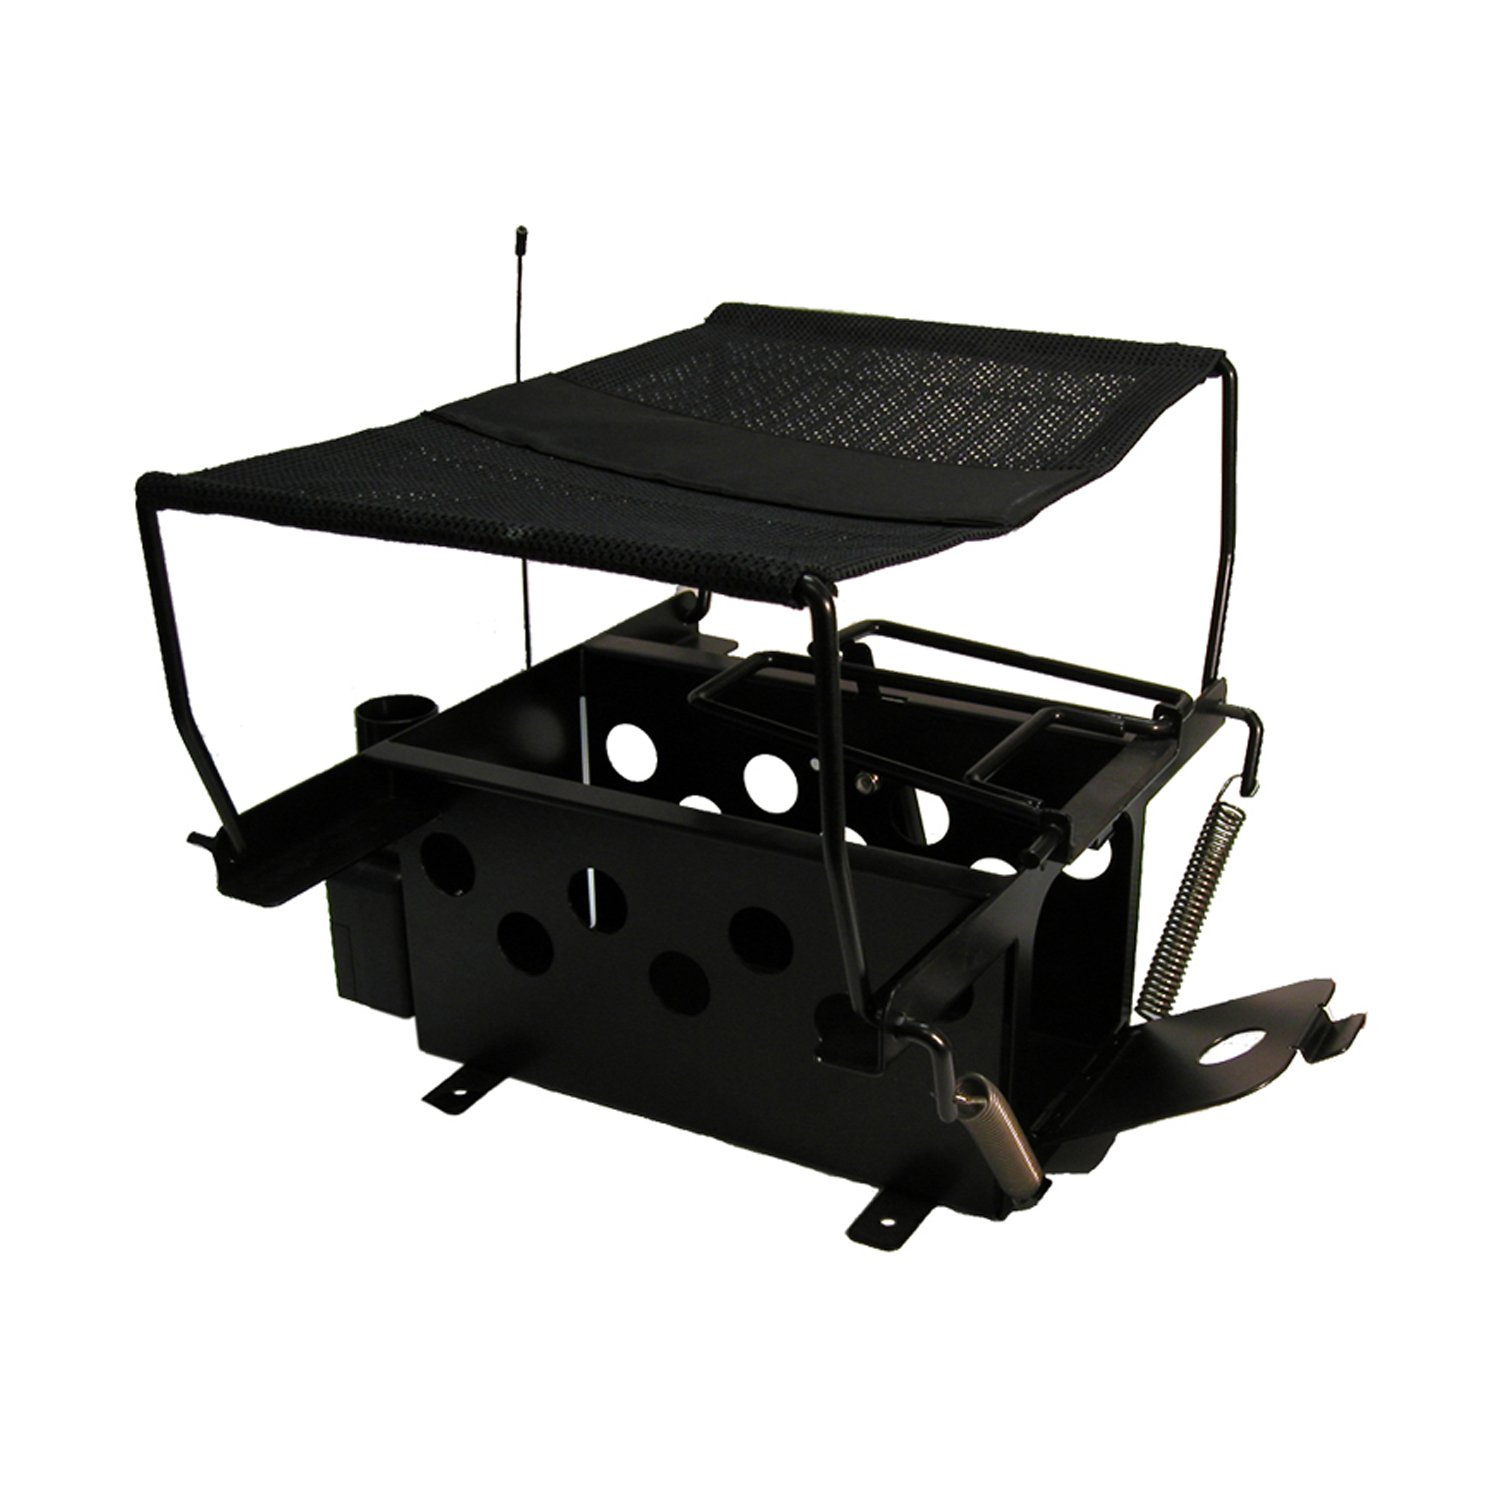 DT Systems 500 Series Remote Bird Launcher for Quail and Pigeon Sized Bird D.T. Systems Inc. BL505